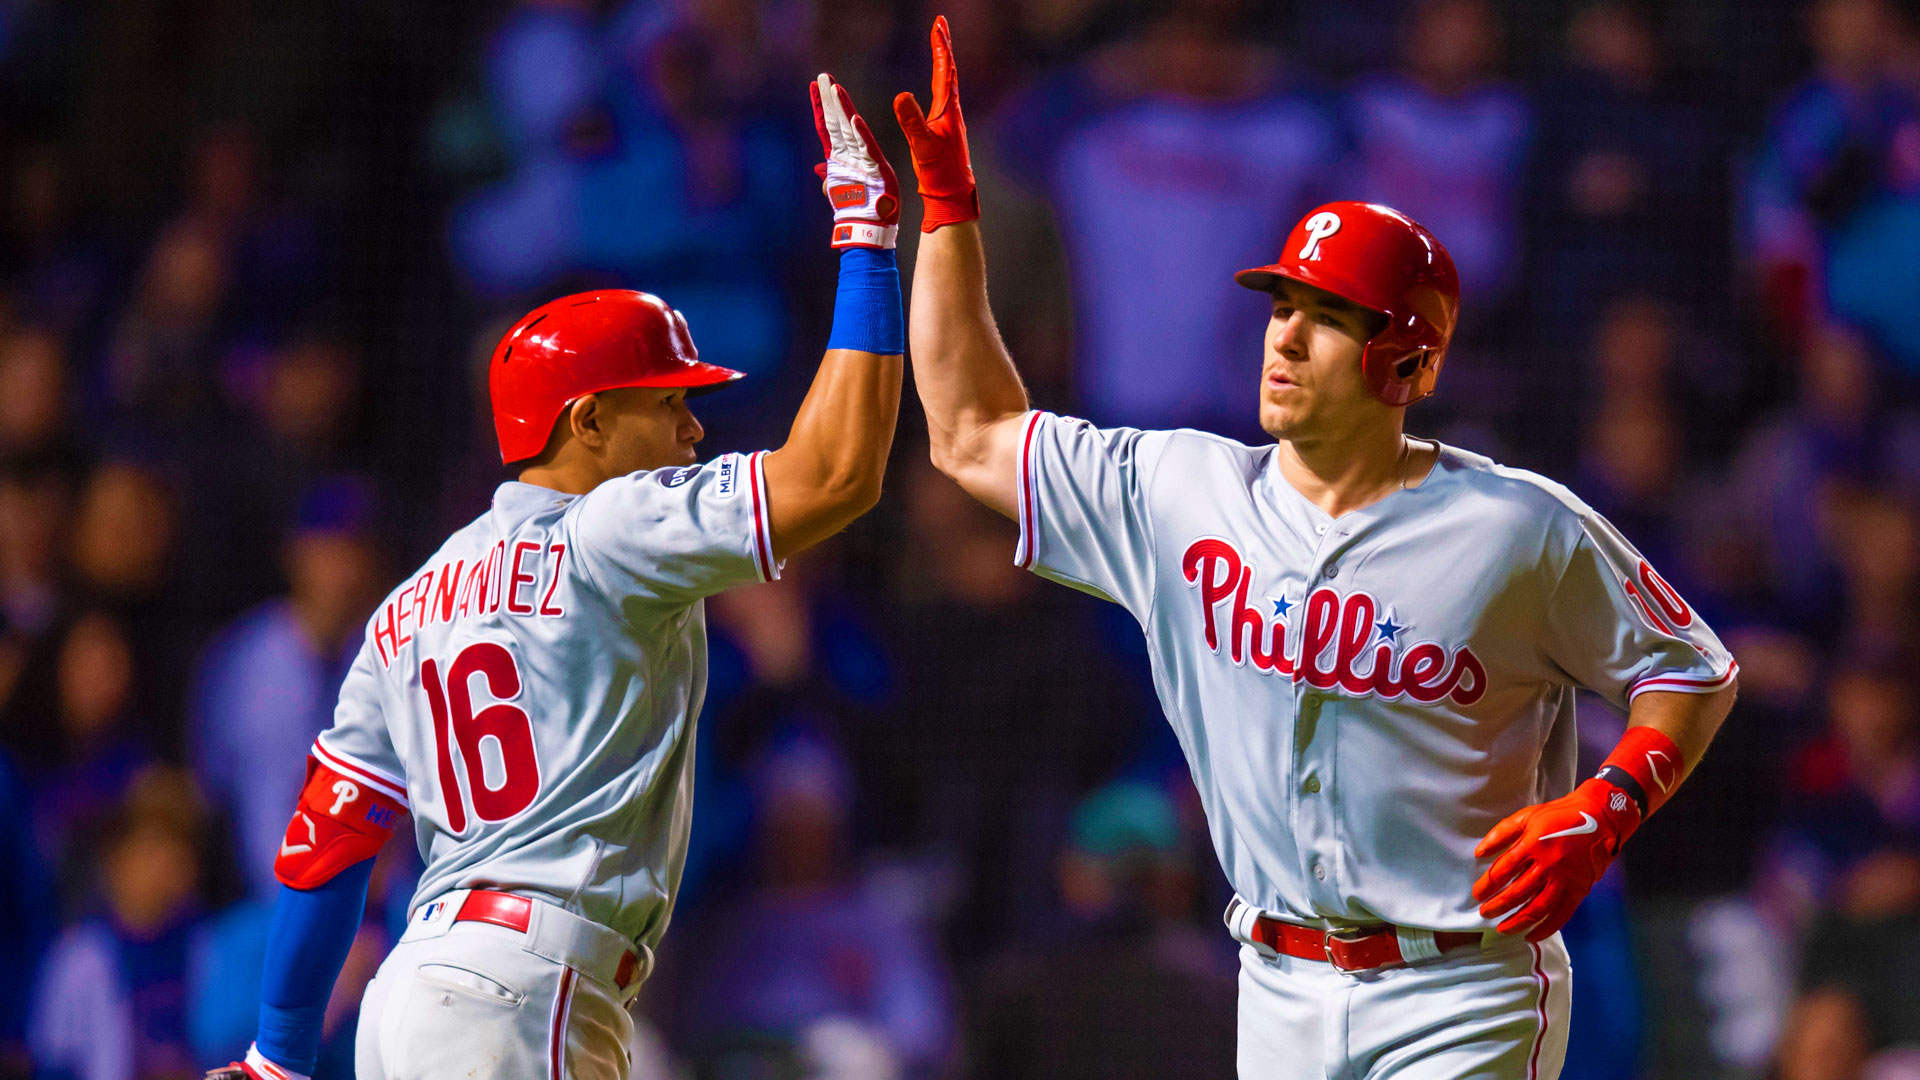 Phils fight back to defeat Chicago 5-4 in extras